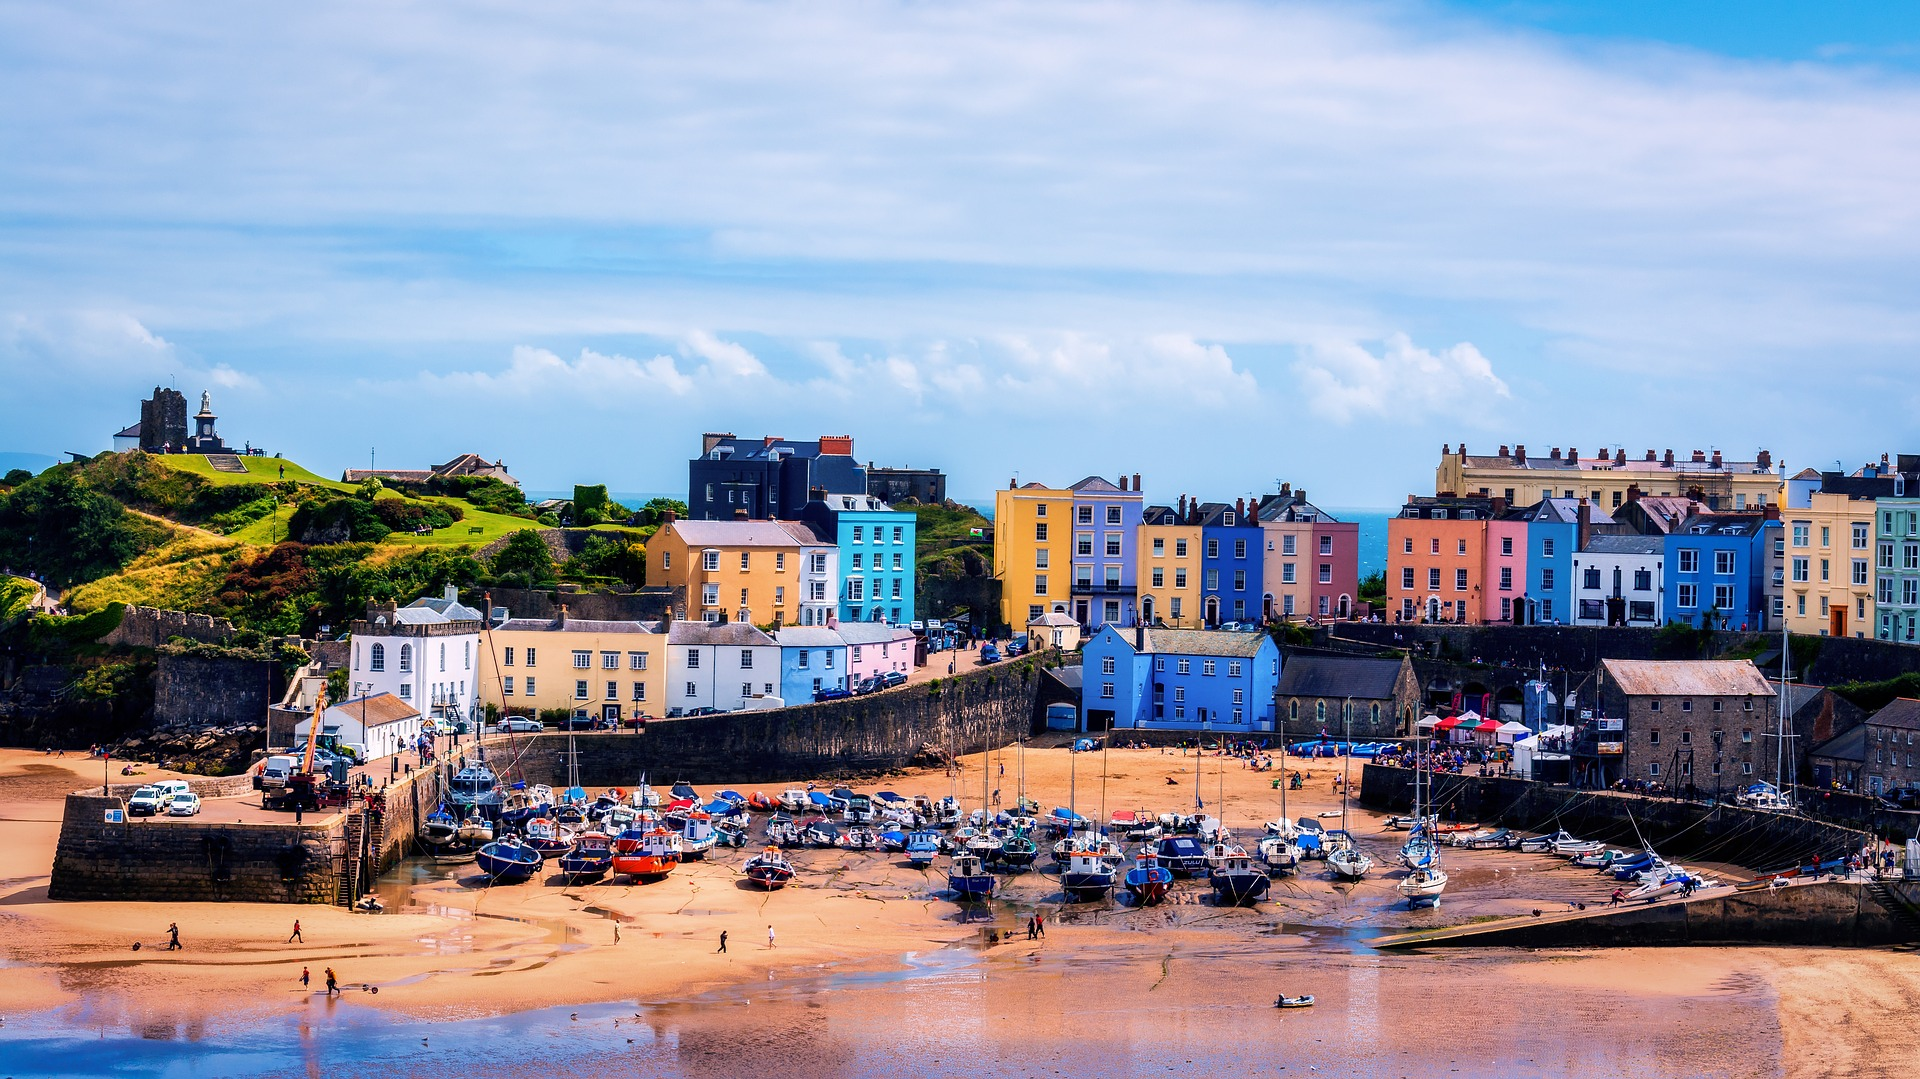 Things To Do In Tenby